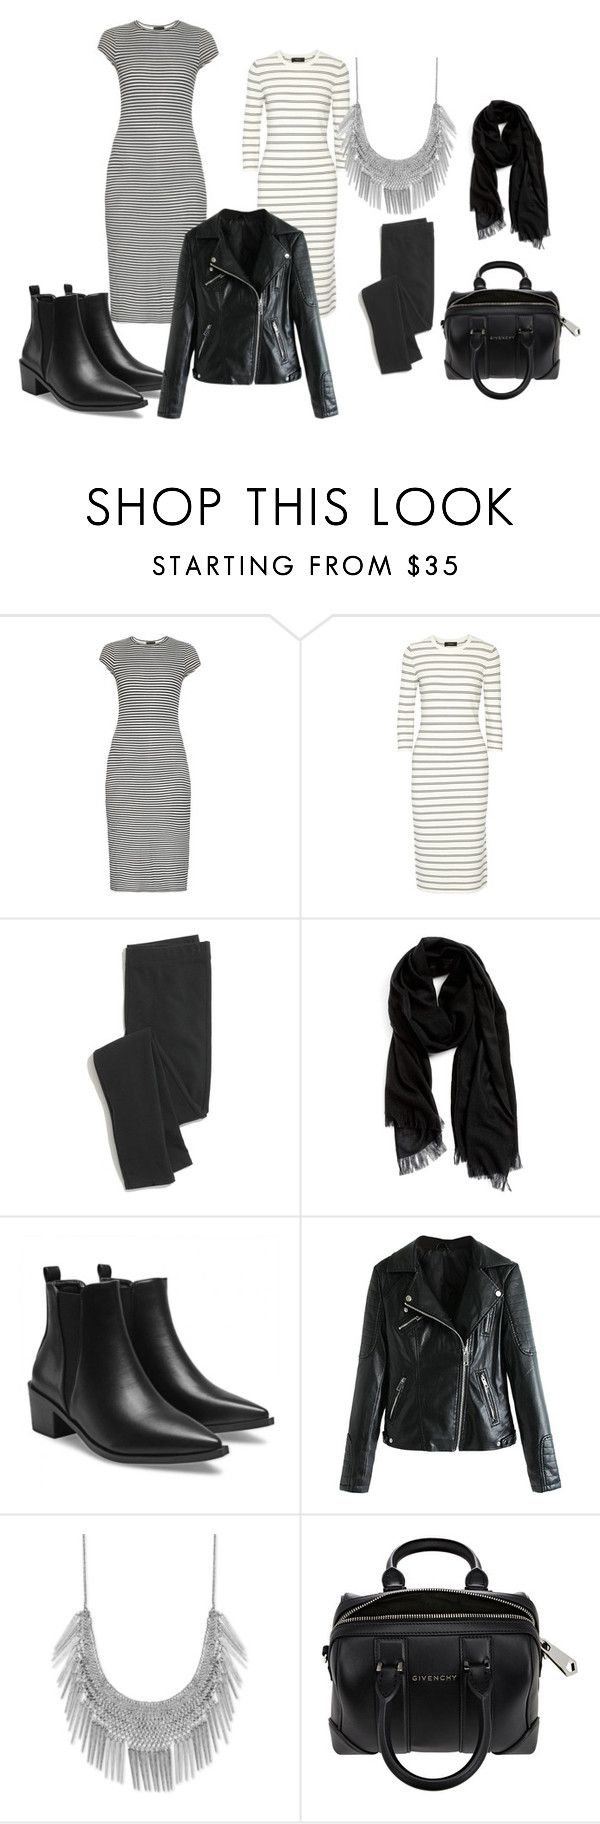 """striped dress in city"" by ve-safarova on Polyvore featuring ATM by Anthony Thomas Melillo, Theory, Madewell, Nordstrom, Lucky Brand, Givenchy, women's clothing, women, female and woman"